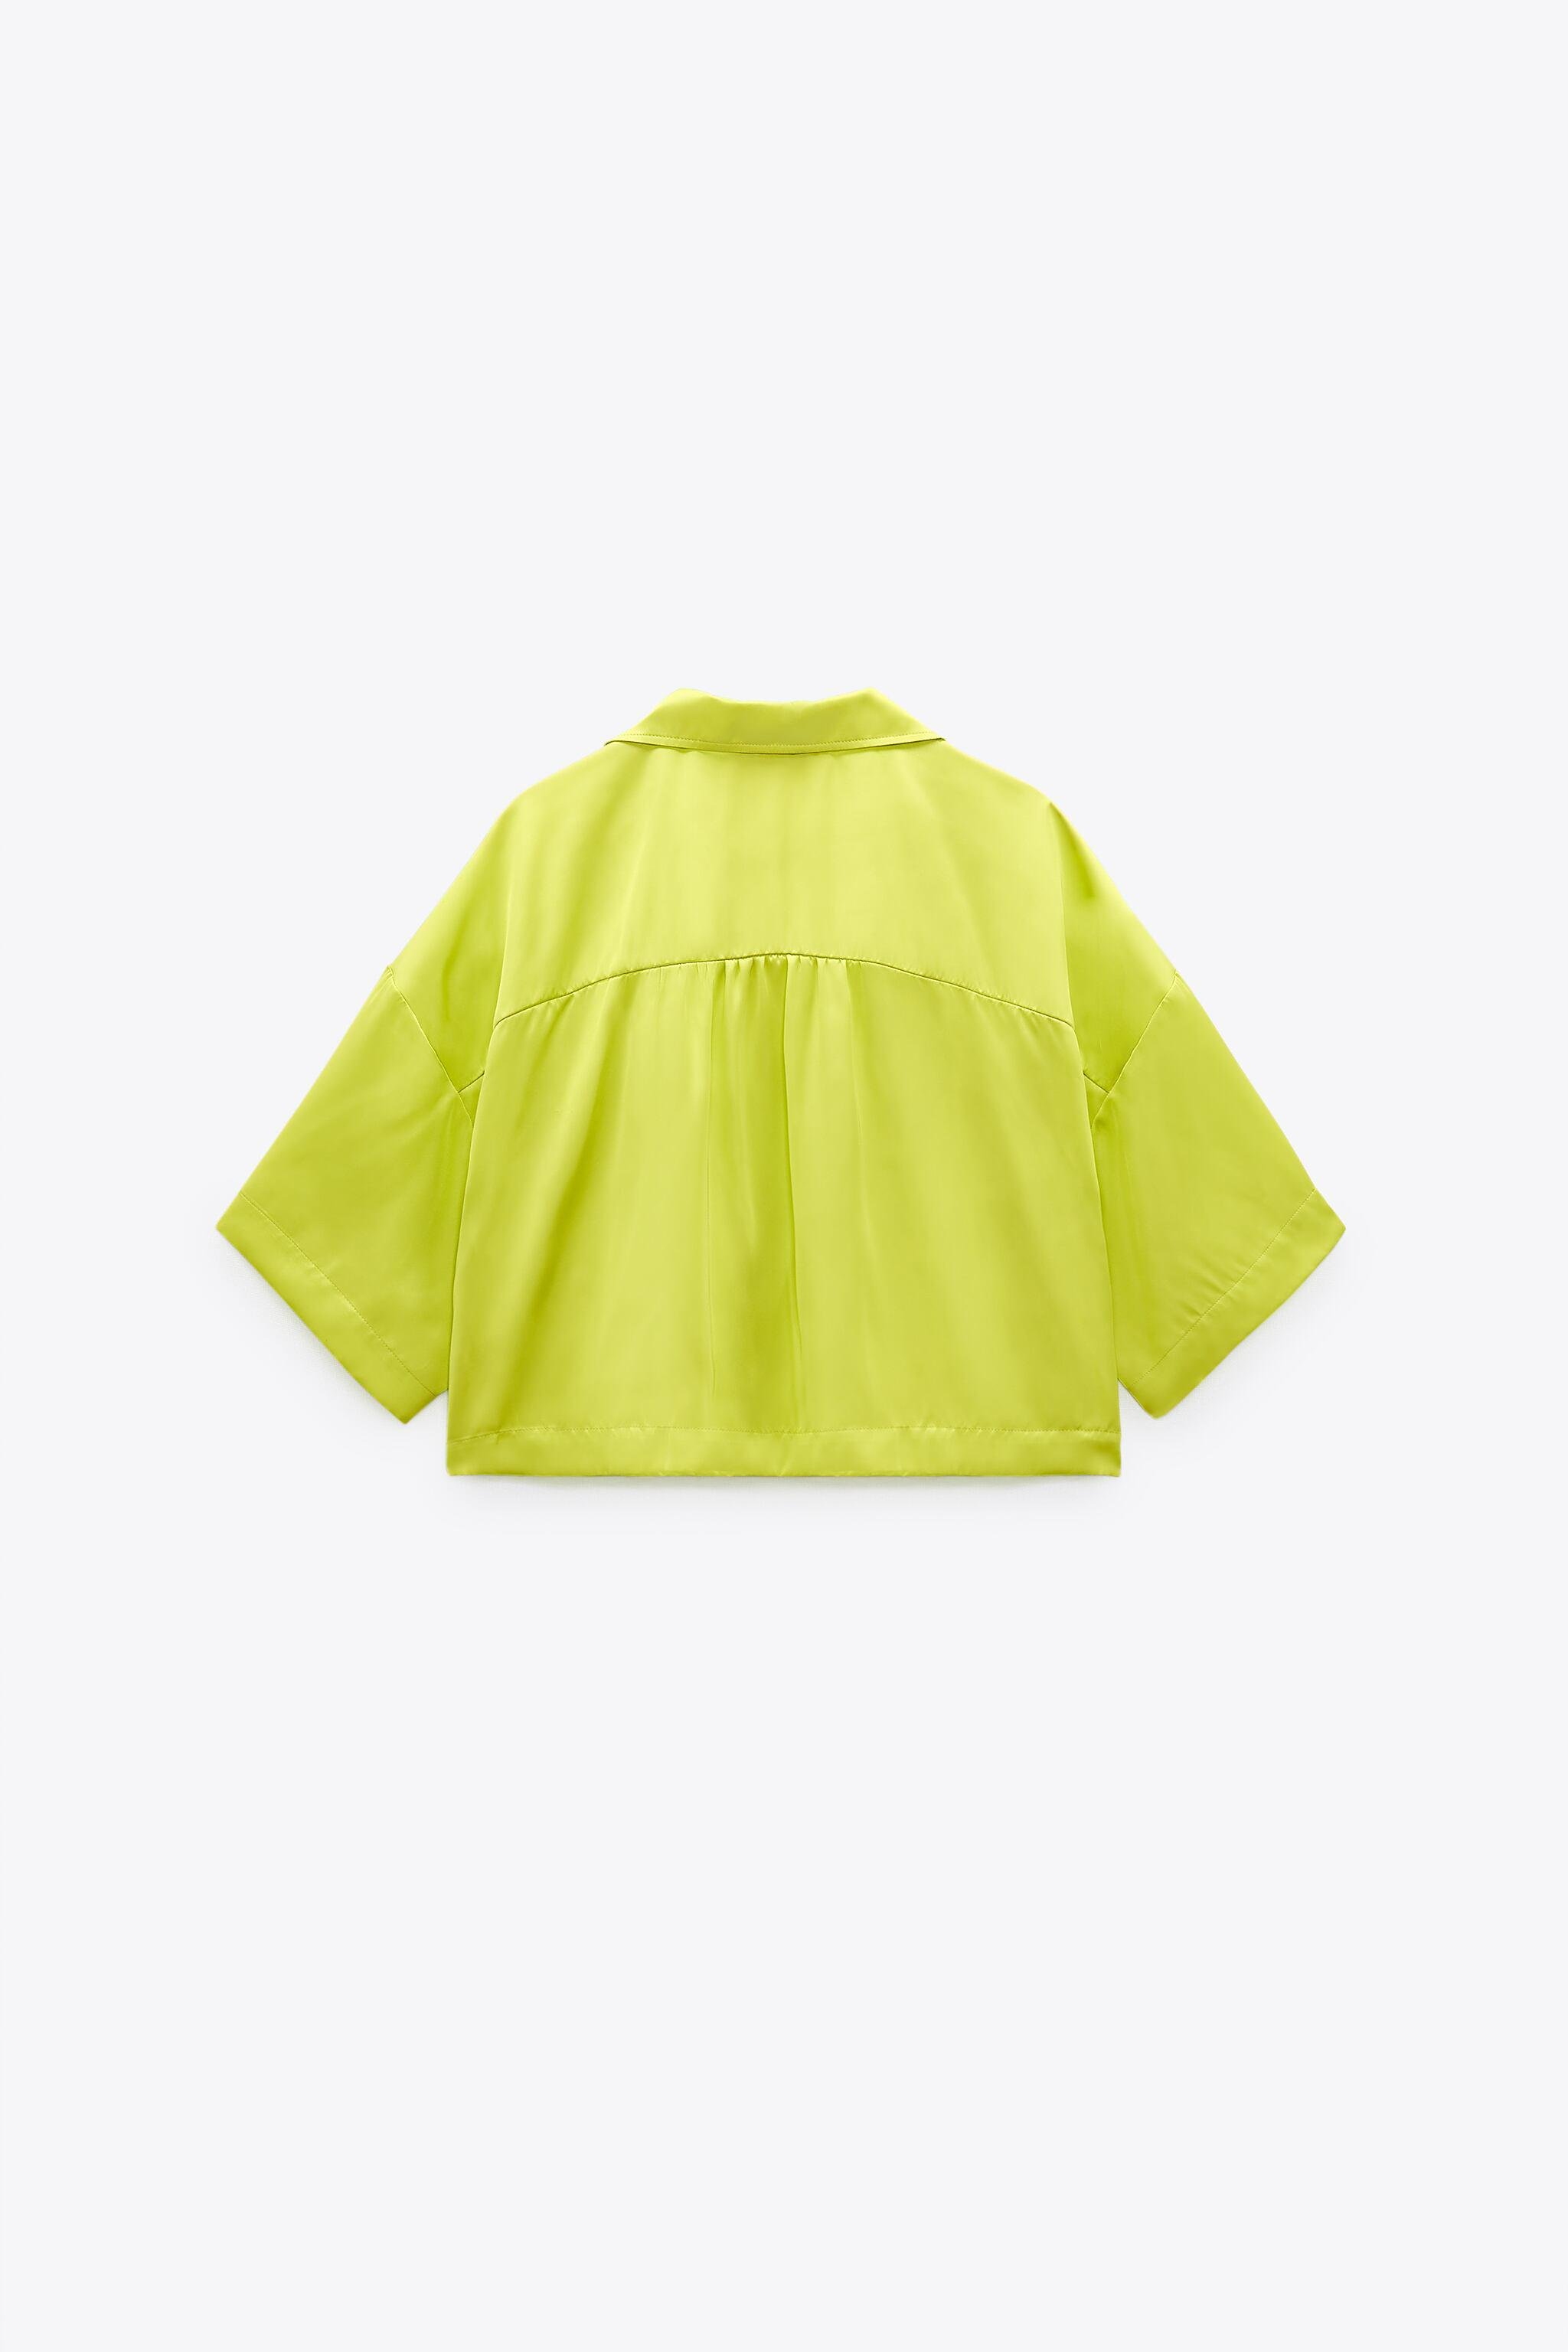 SATIN EFFECT CROPPED BLOUSE 1